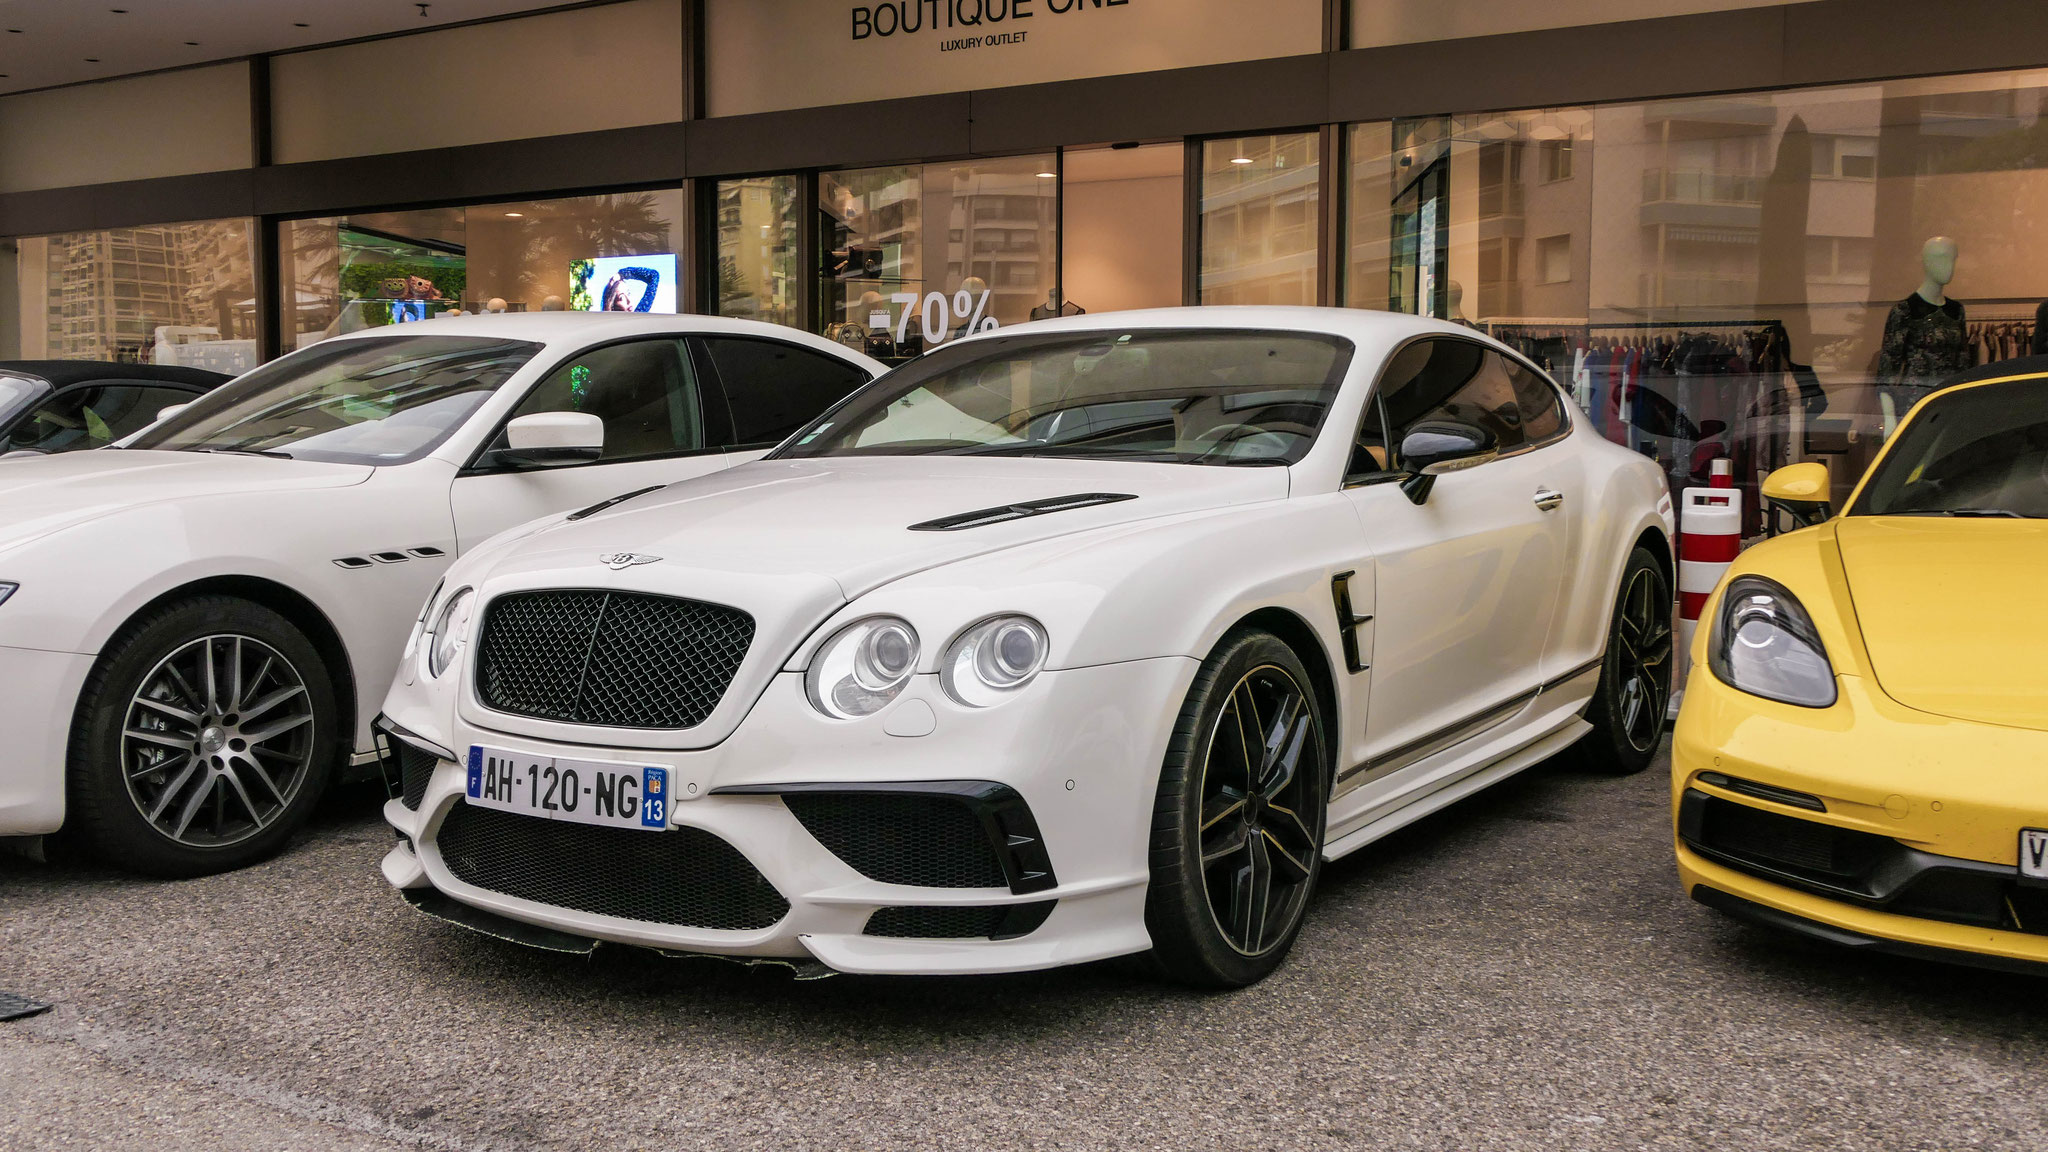 Bentley Continental GT Supersports - AH-120-NG-13 (FRA)